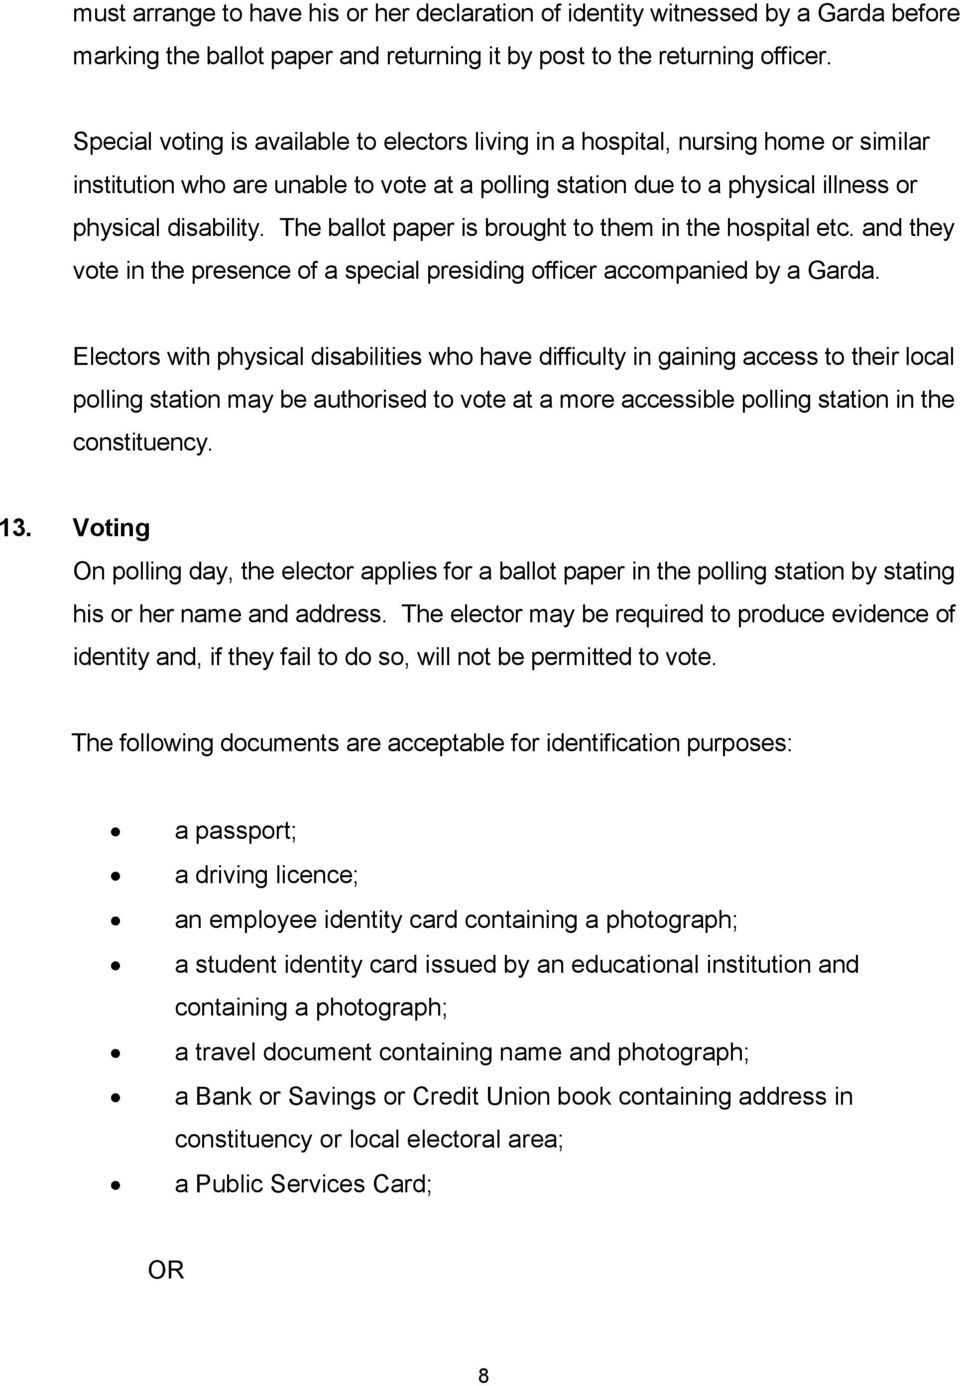 The ballot paper is brought to them in the hospital etc. and they vote in the presence of a special presiding officer accompanied by a Garda.